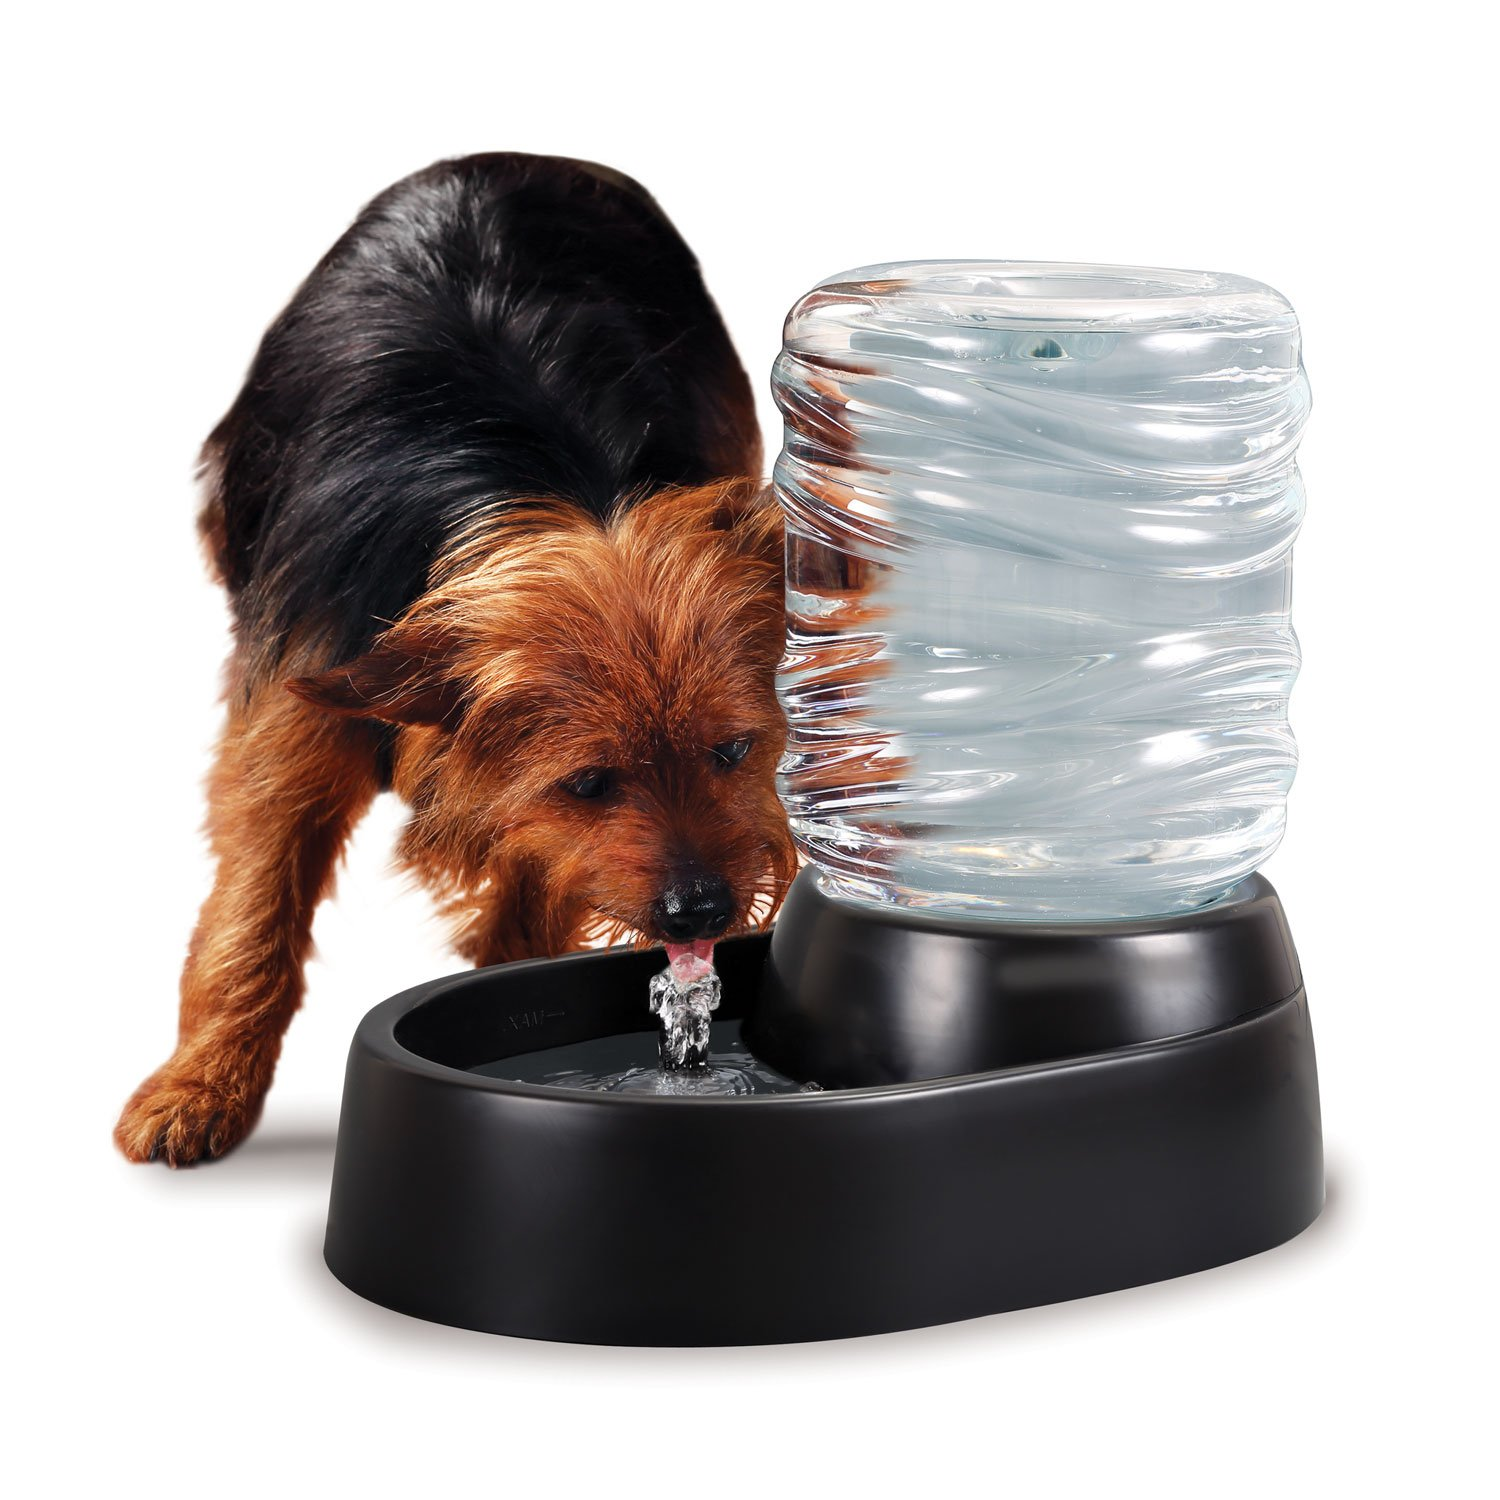 Ideas In Life Cat Dog Pet Water Dispenser - Electric Drinking Fountain - Water Feeder Drink Reservoir Bowl Bubbling for Large Medium Small Pets